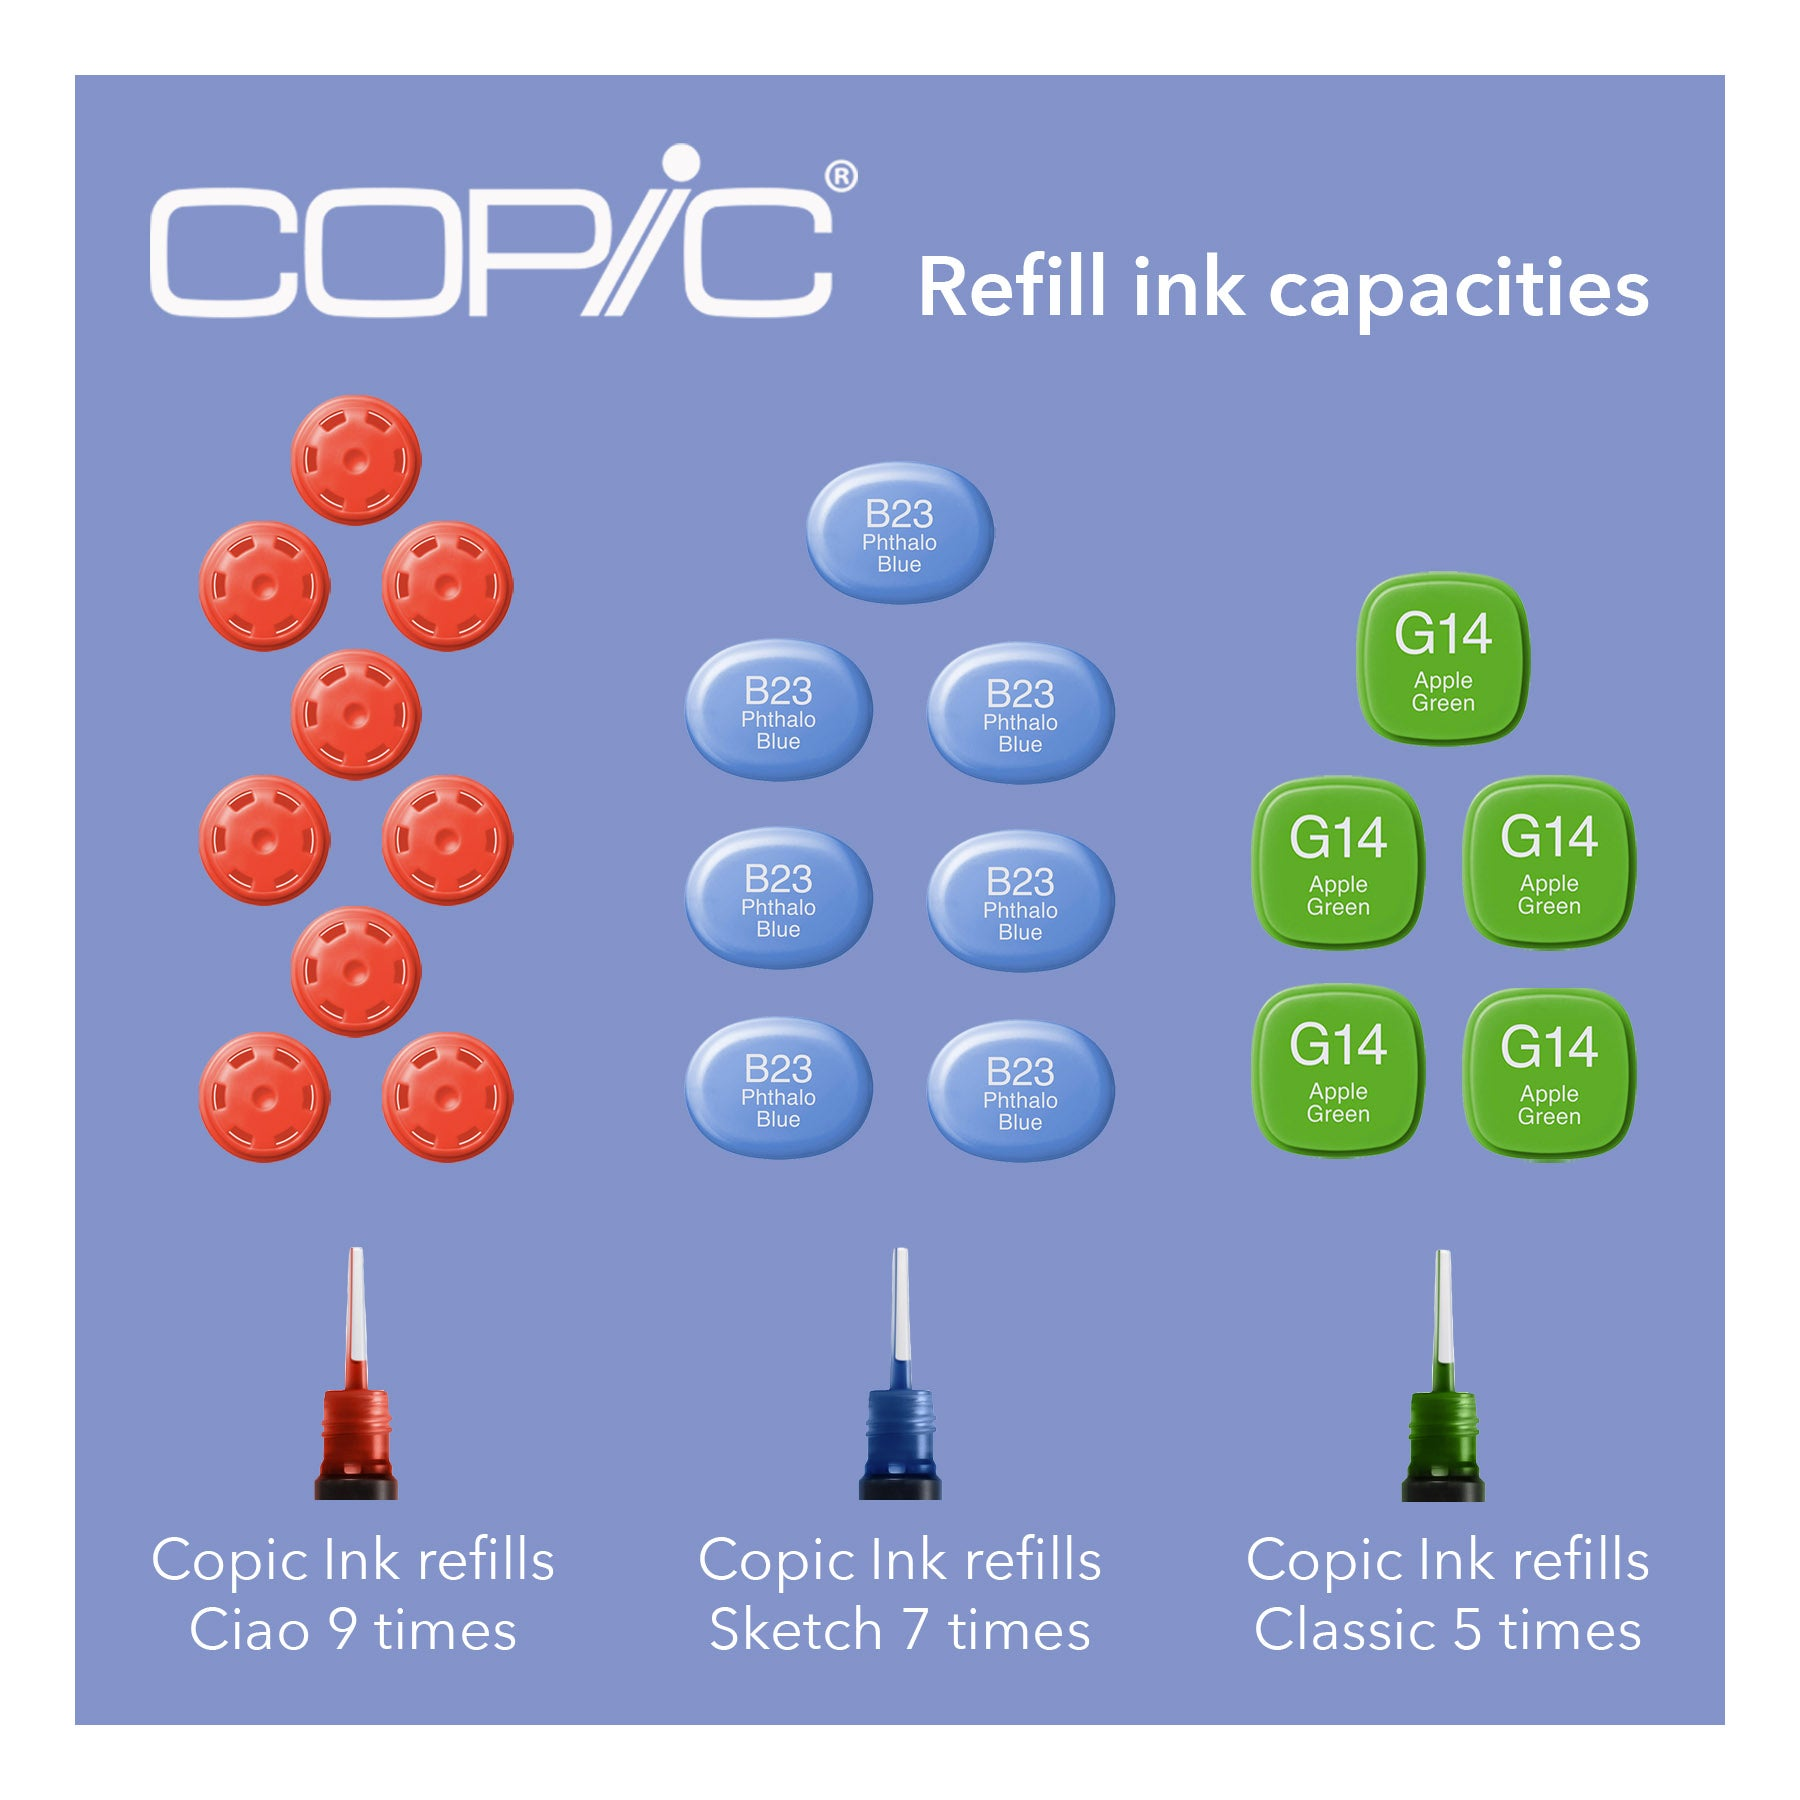 Refill ink capacities